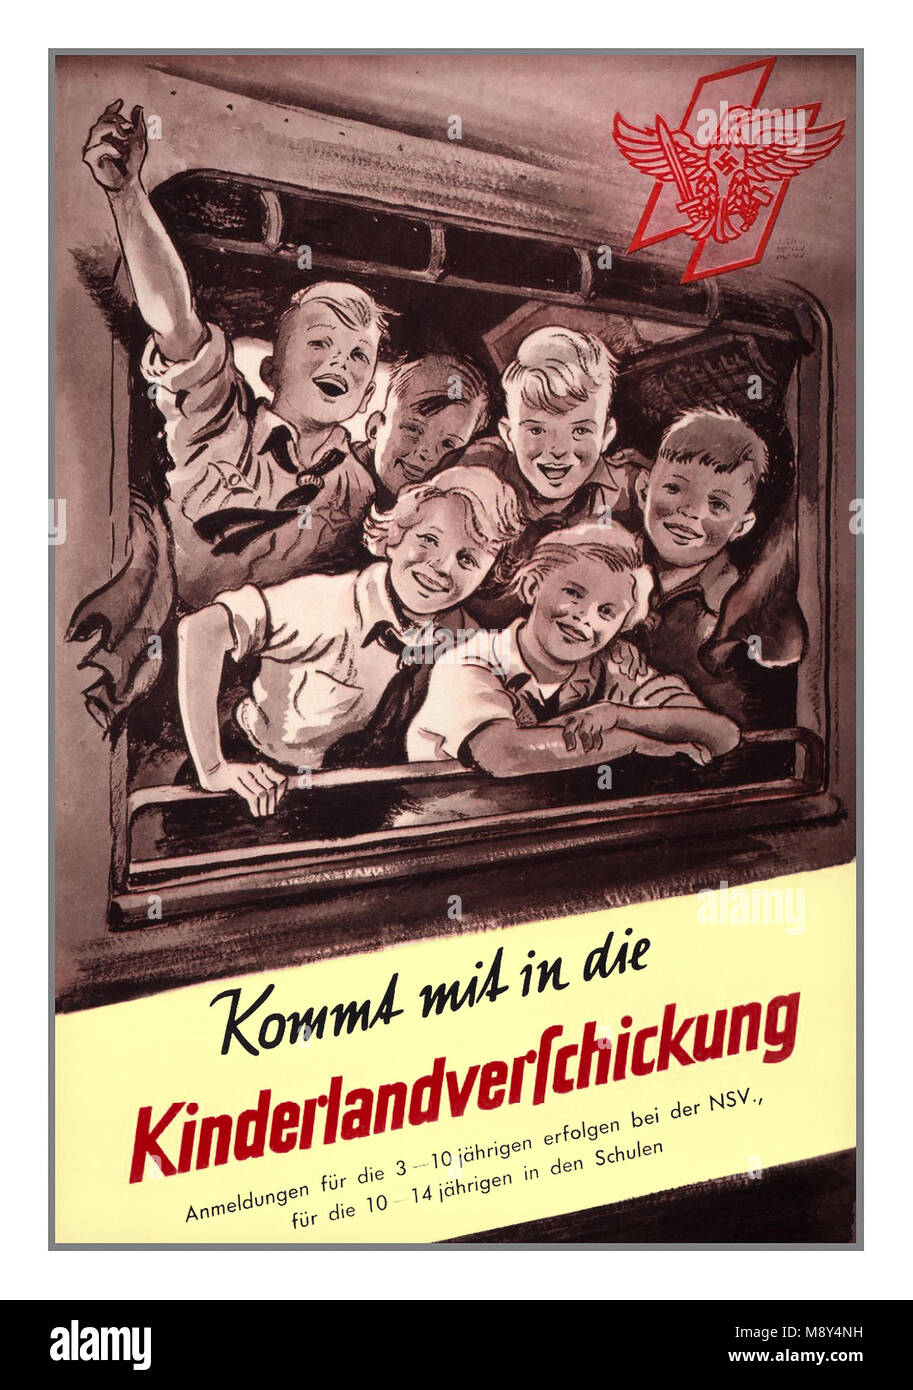 Vintage WW2 Nazi Germany ' Kinderlandverschickung' Propaganda Poster from 1942-1943. Allied bombing of German cities - Stock Image